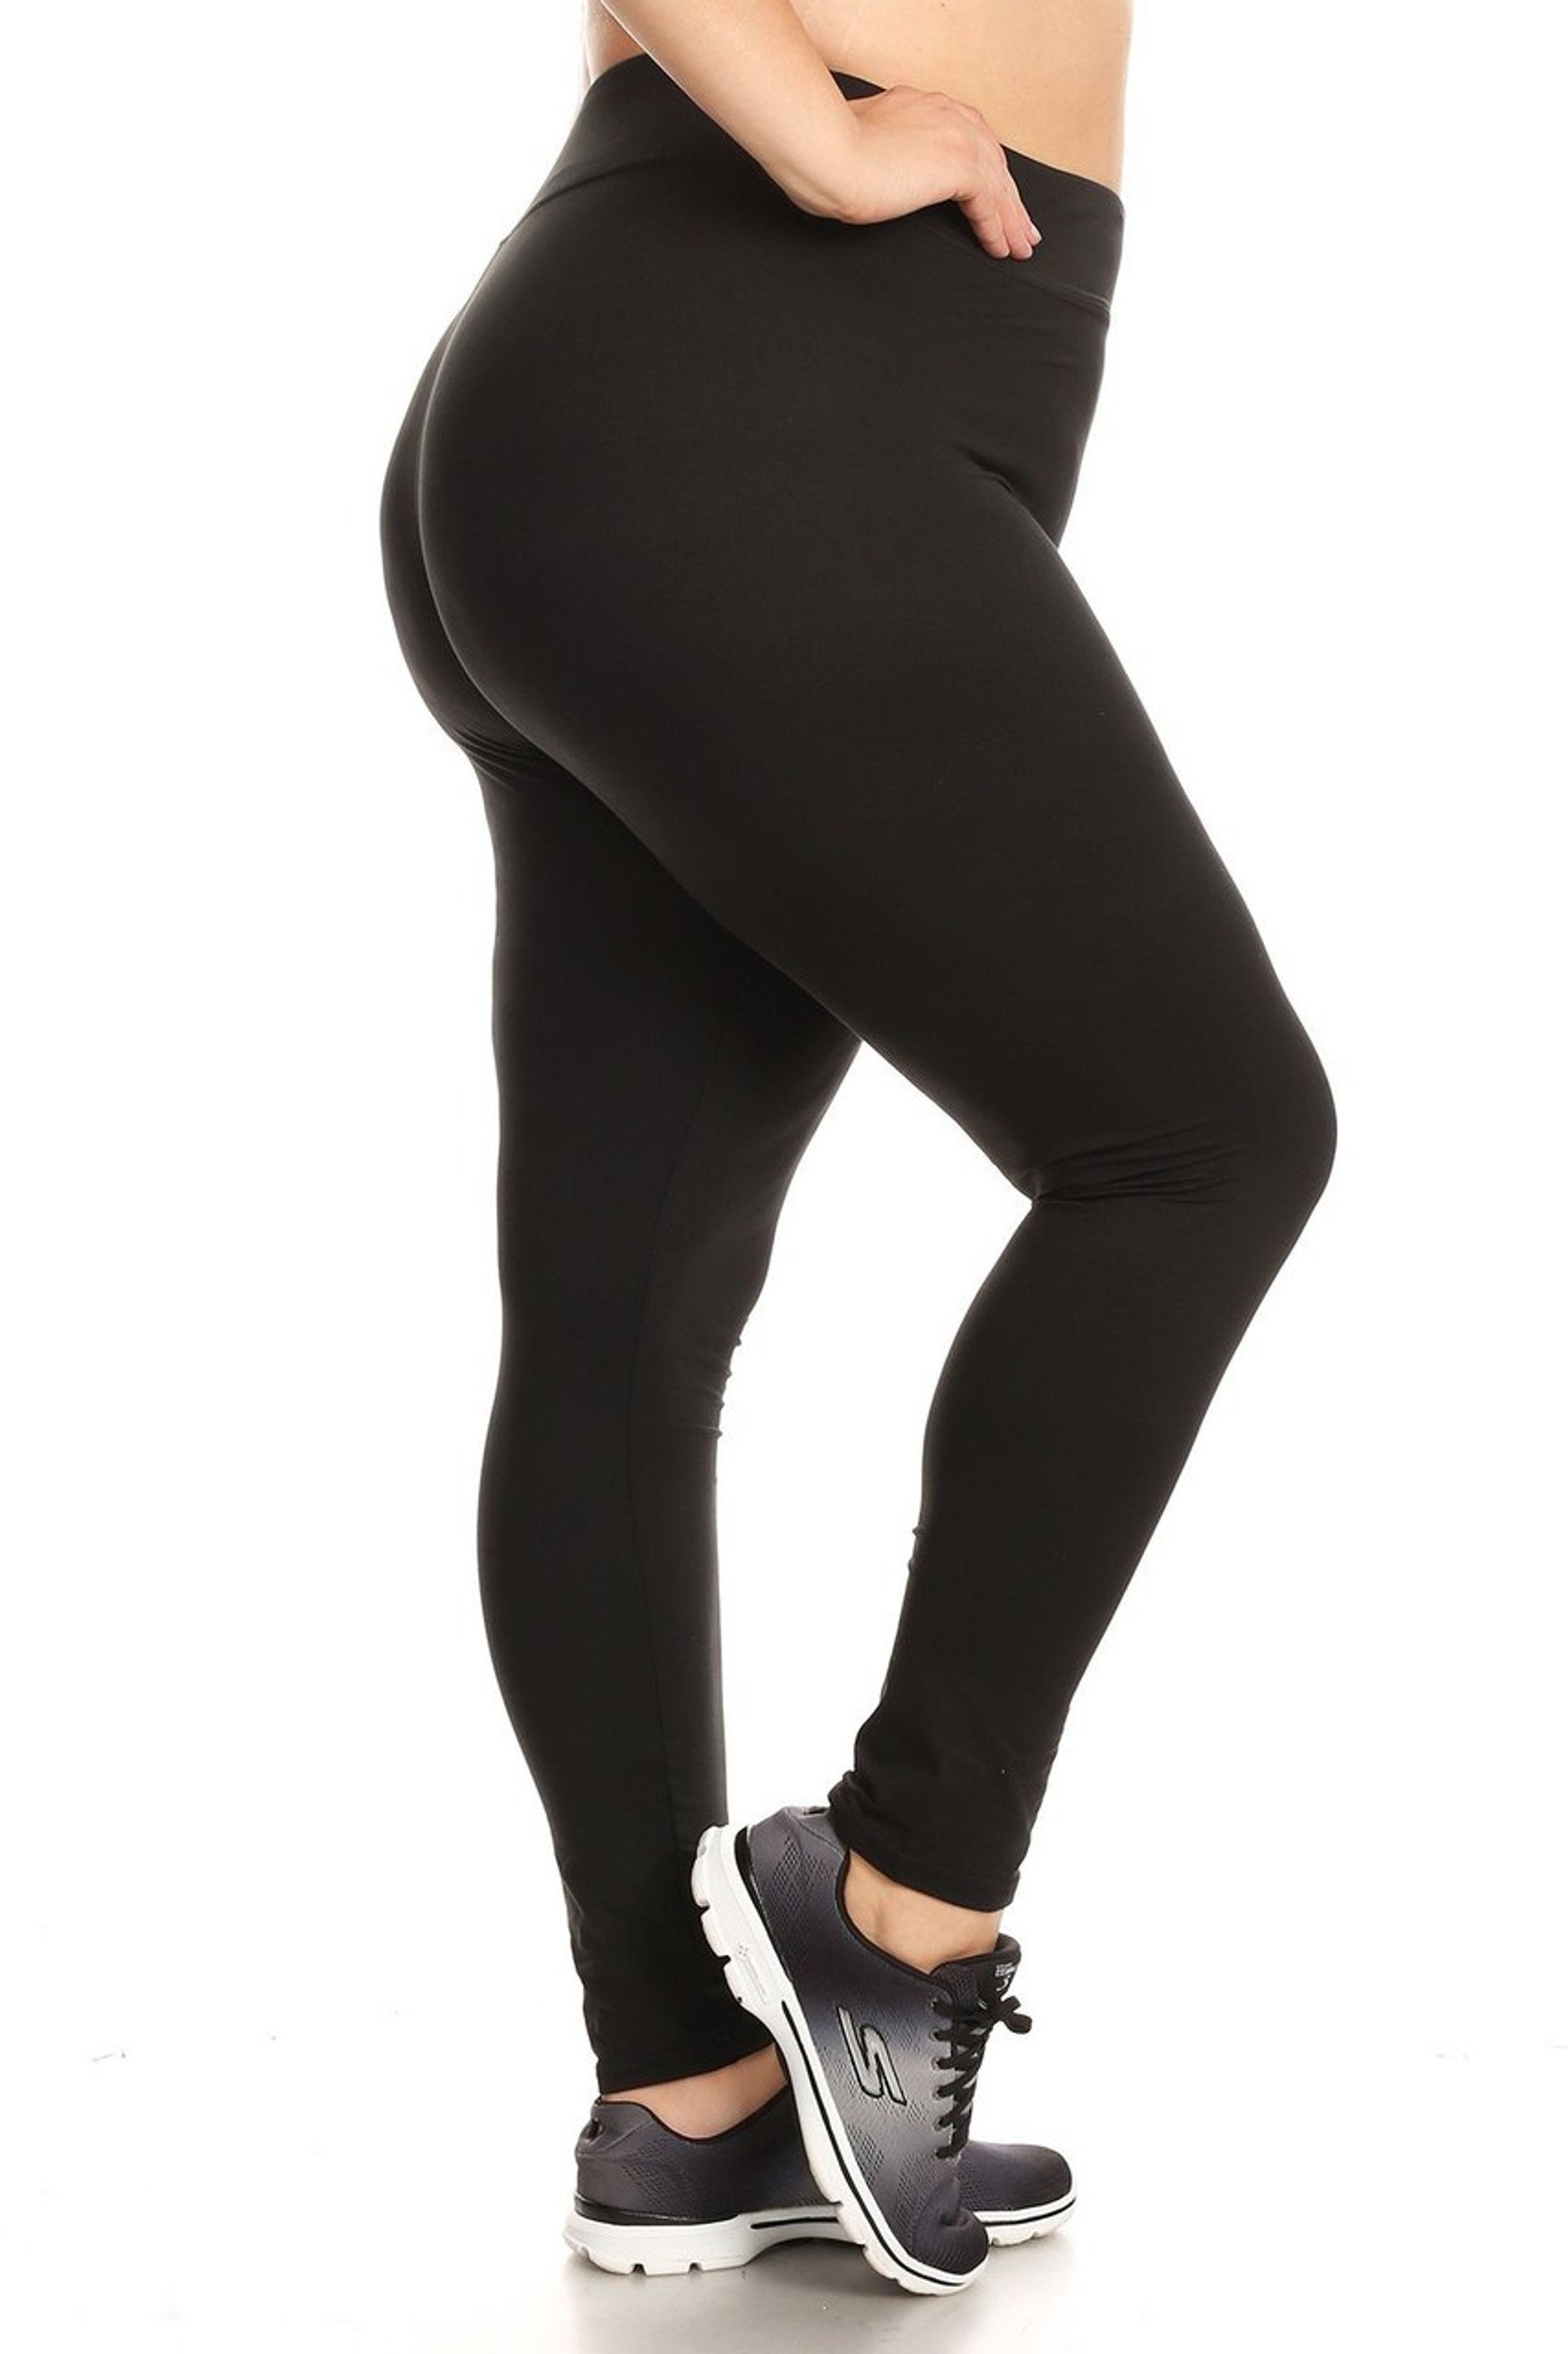 Brushed Right leg show off image of X7L105 - High Waisted Fleece Lined Sport Plus Size Leggings